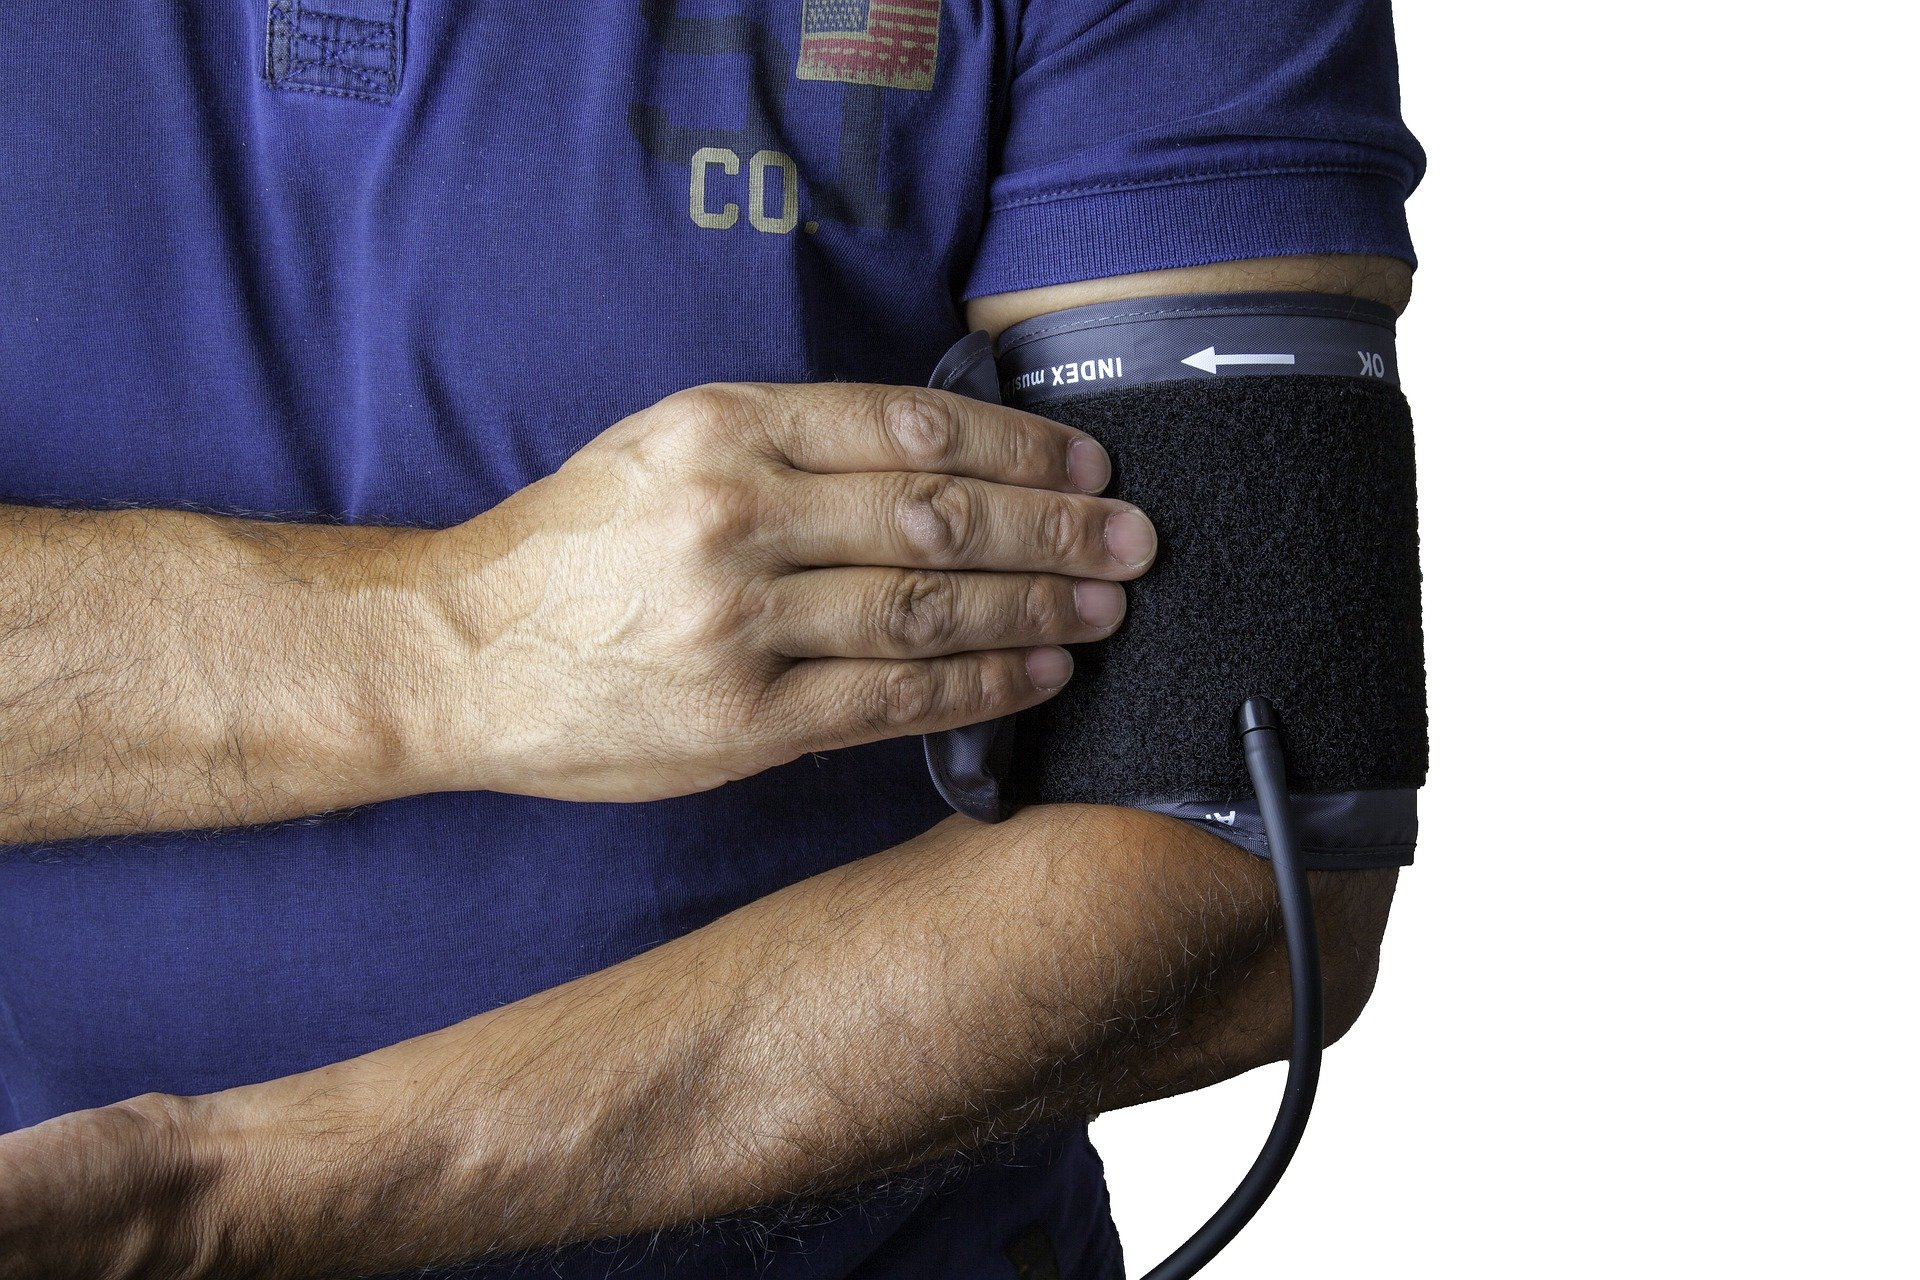 Elevated blood pressure is linked to increased risk of aortic valve disease - Dotemirates